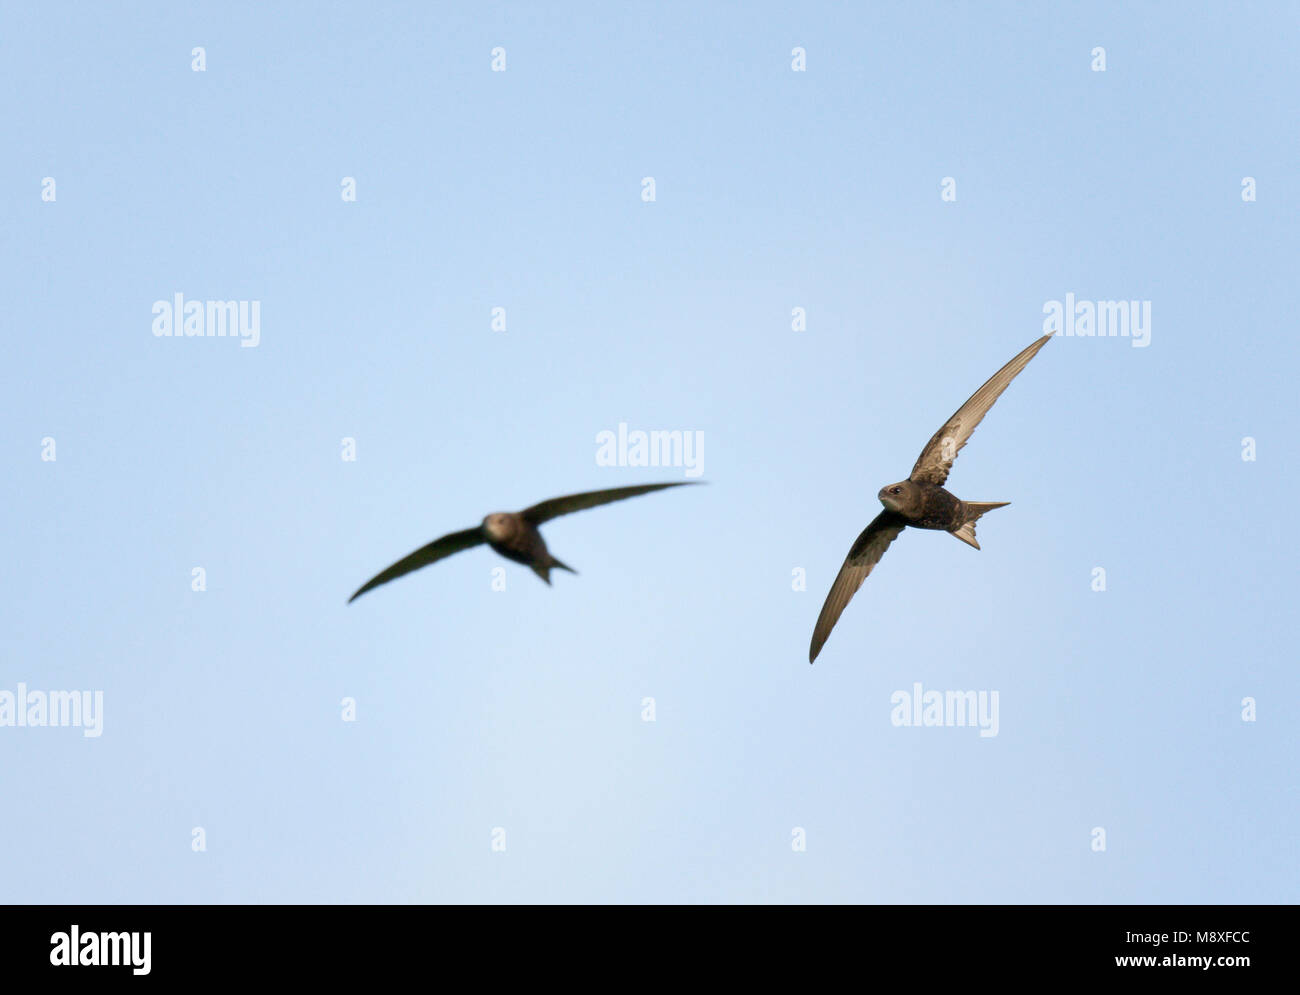 Twee Vliegende, jagende, in de lucht fouragerende Gierzwaluwen. Two Flying, in the air foraging Common Swift - Stock Image